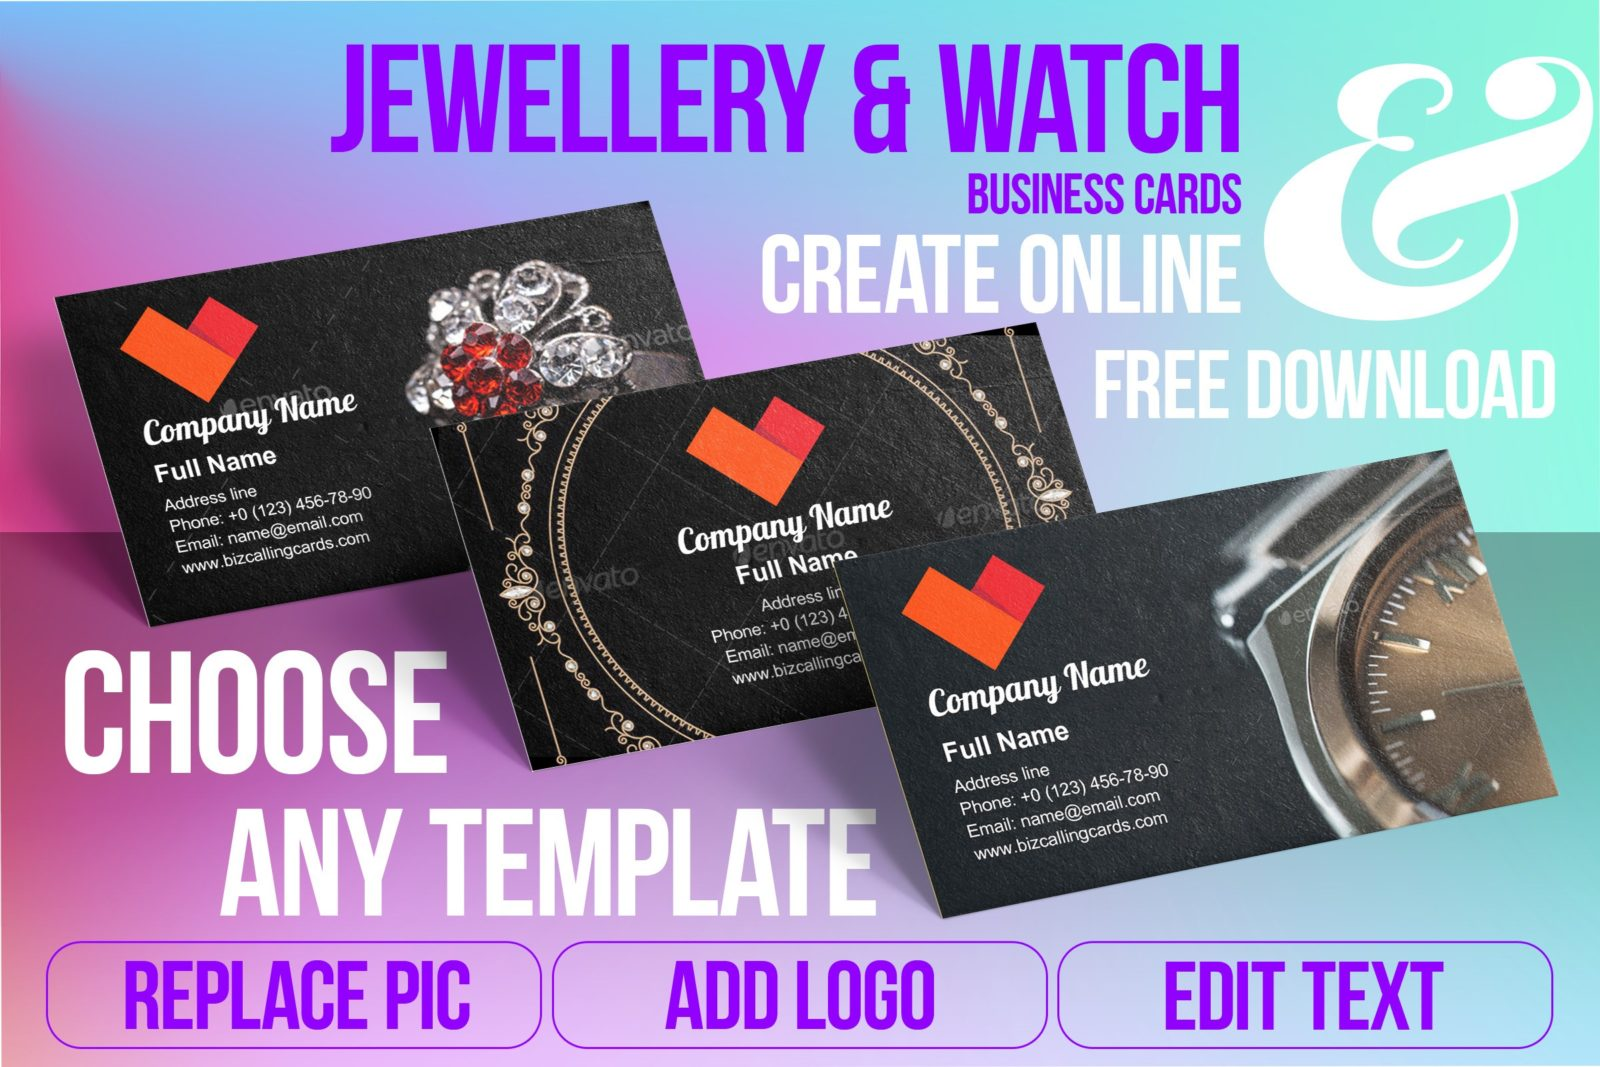 Business Card Templates For Jewellery & Watch Free Download